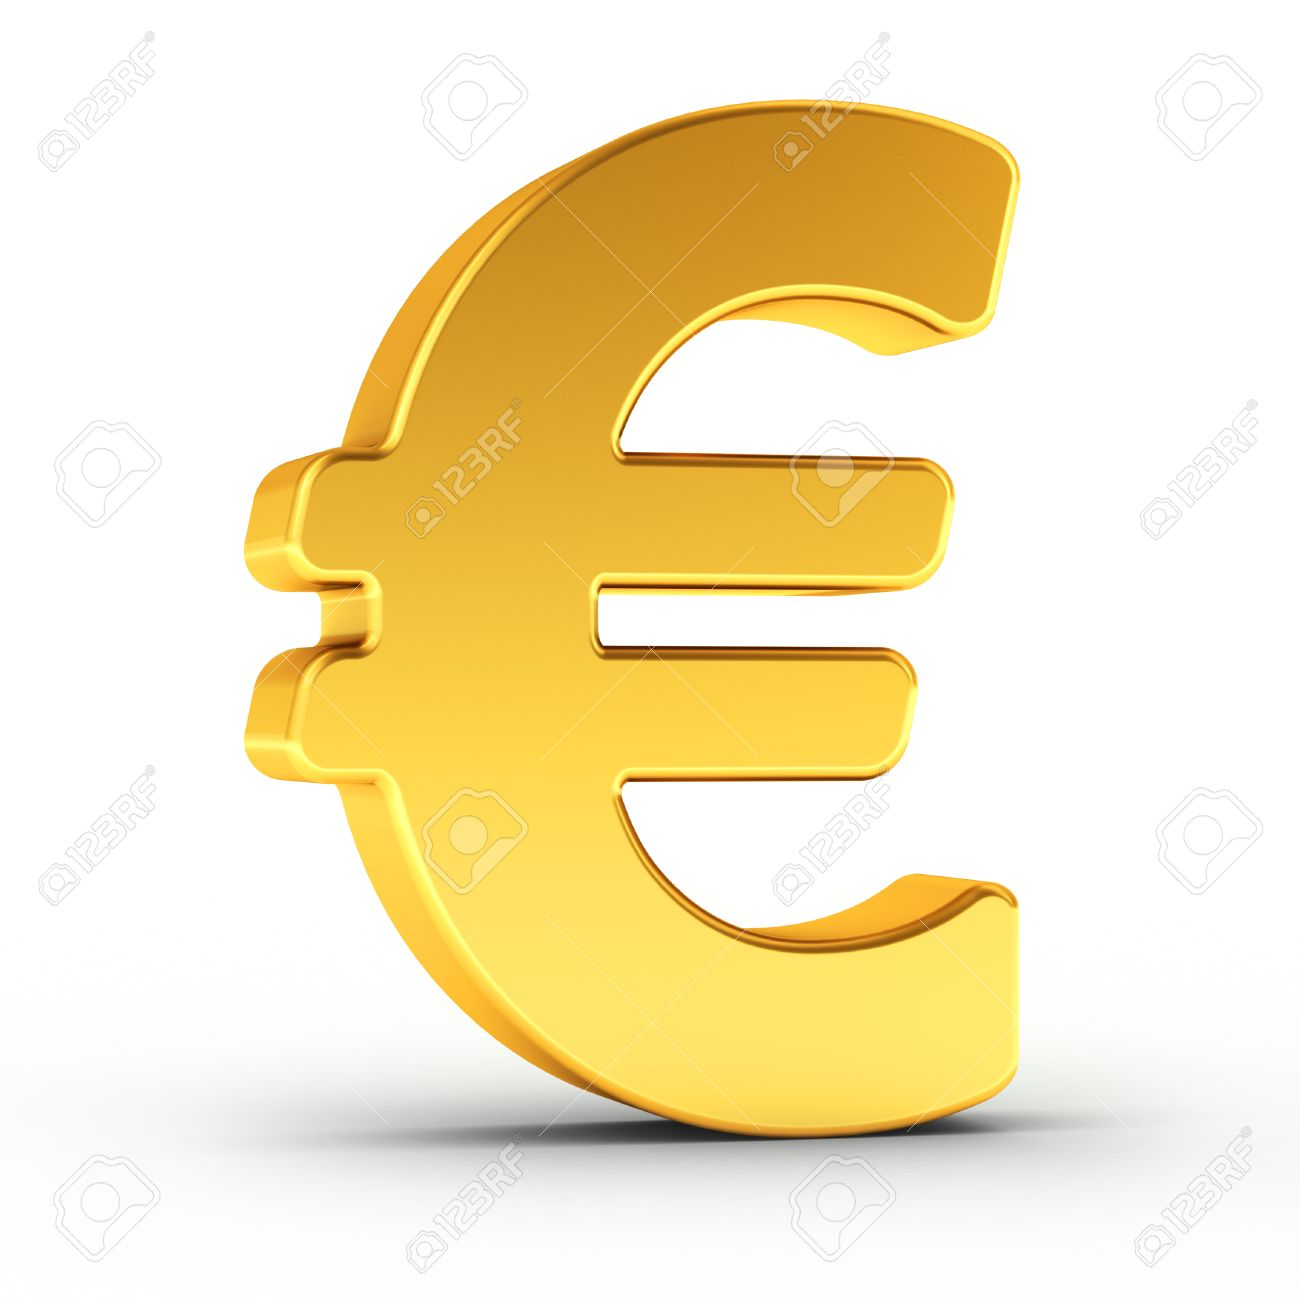 The Euro Symbol As A Polished Golden Object Over White Background